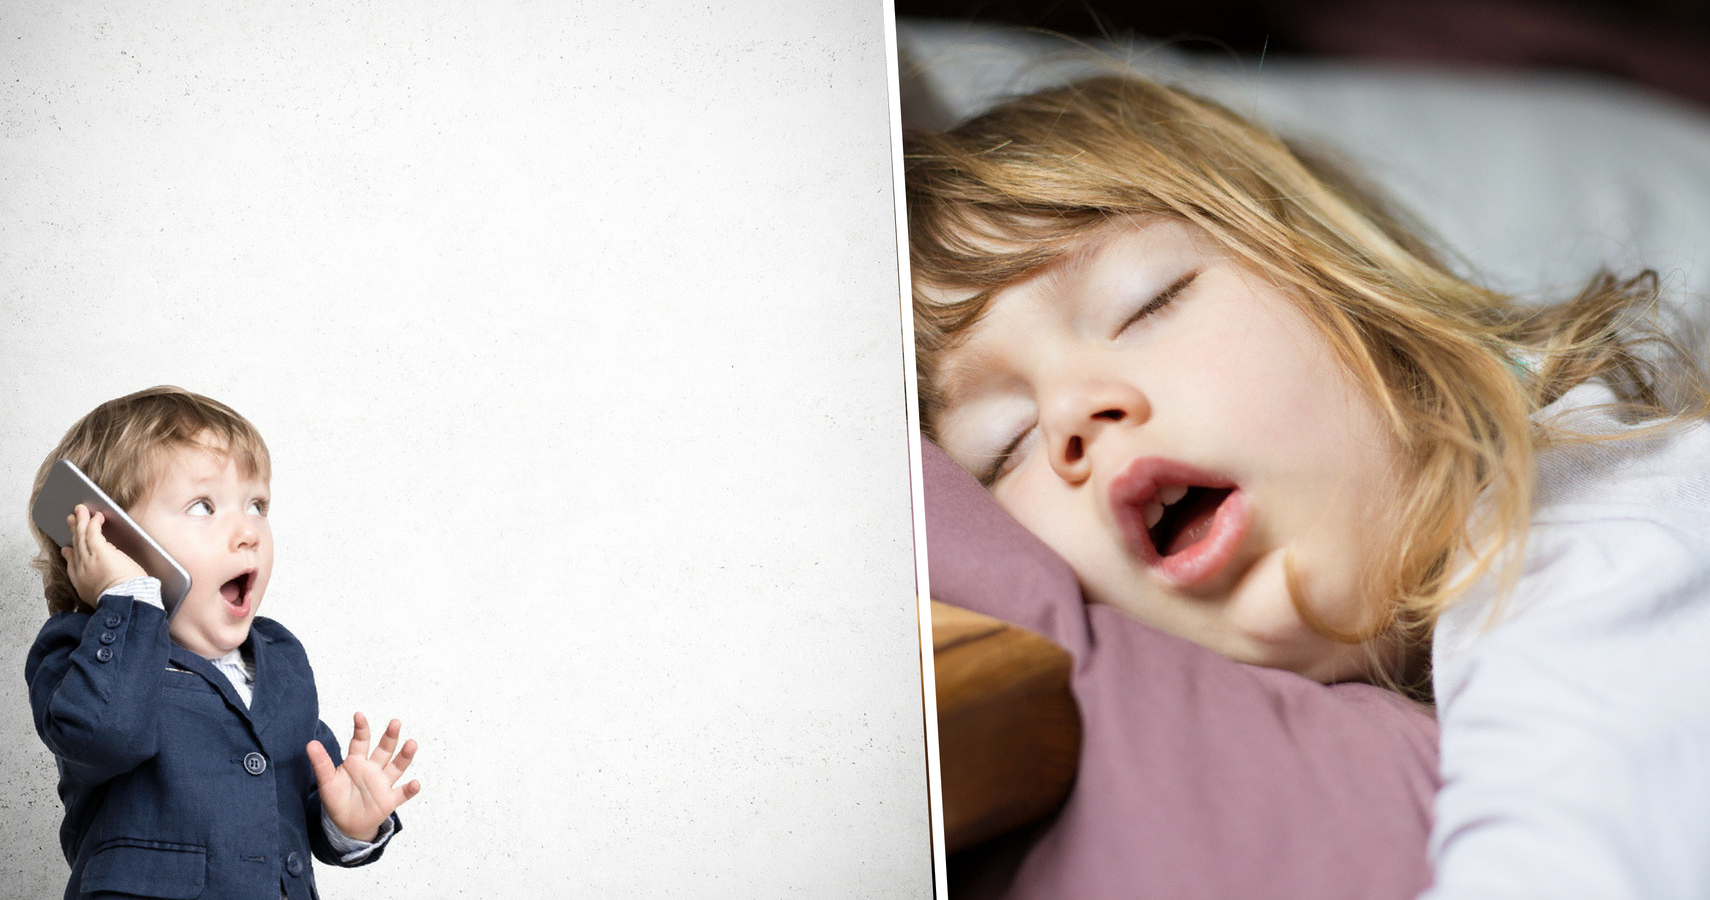 Disney's Sleep Hotline Lets Your Kid Hear 'Goodnight' From Their Fave Character